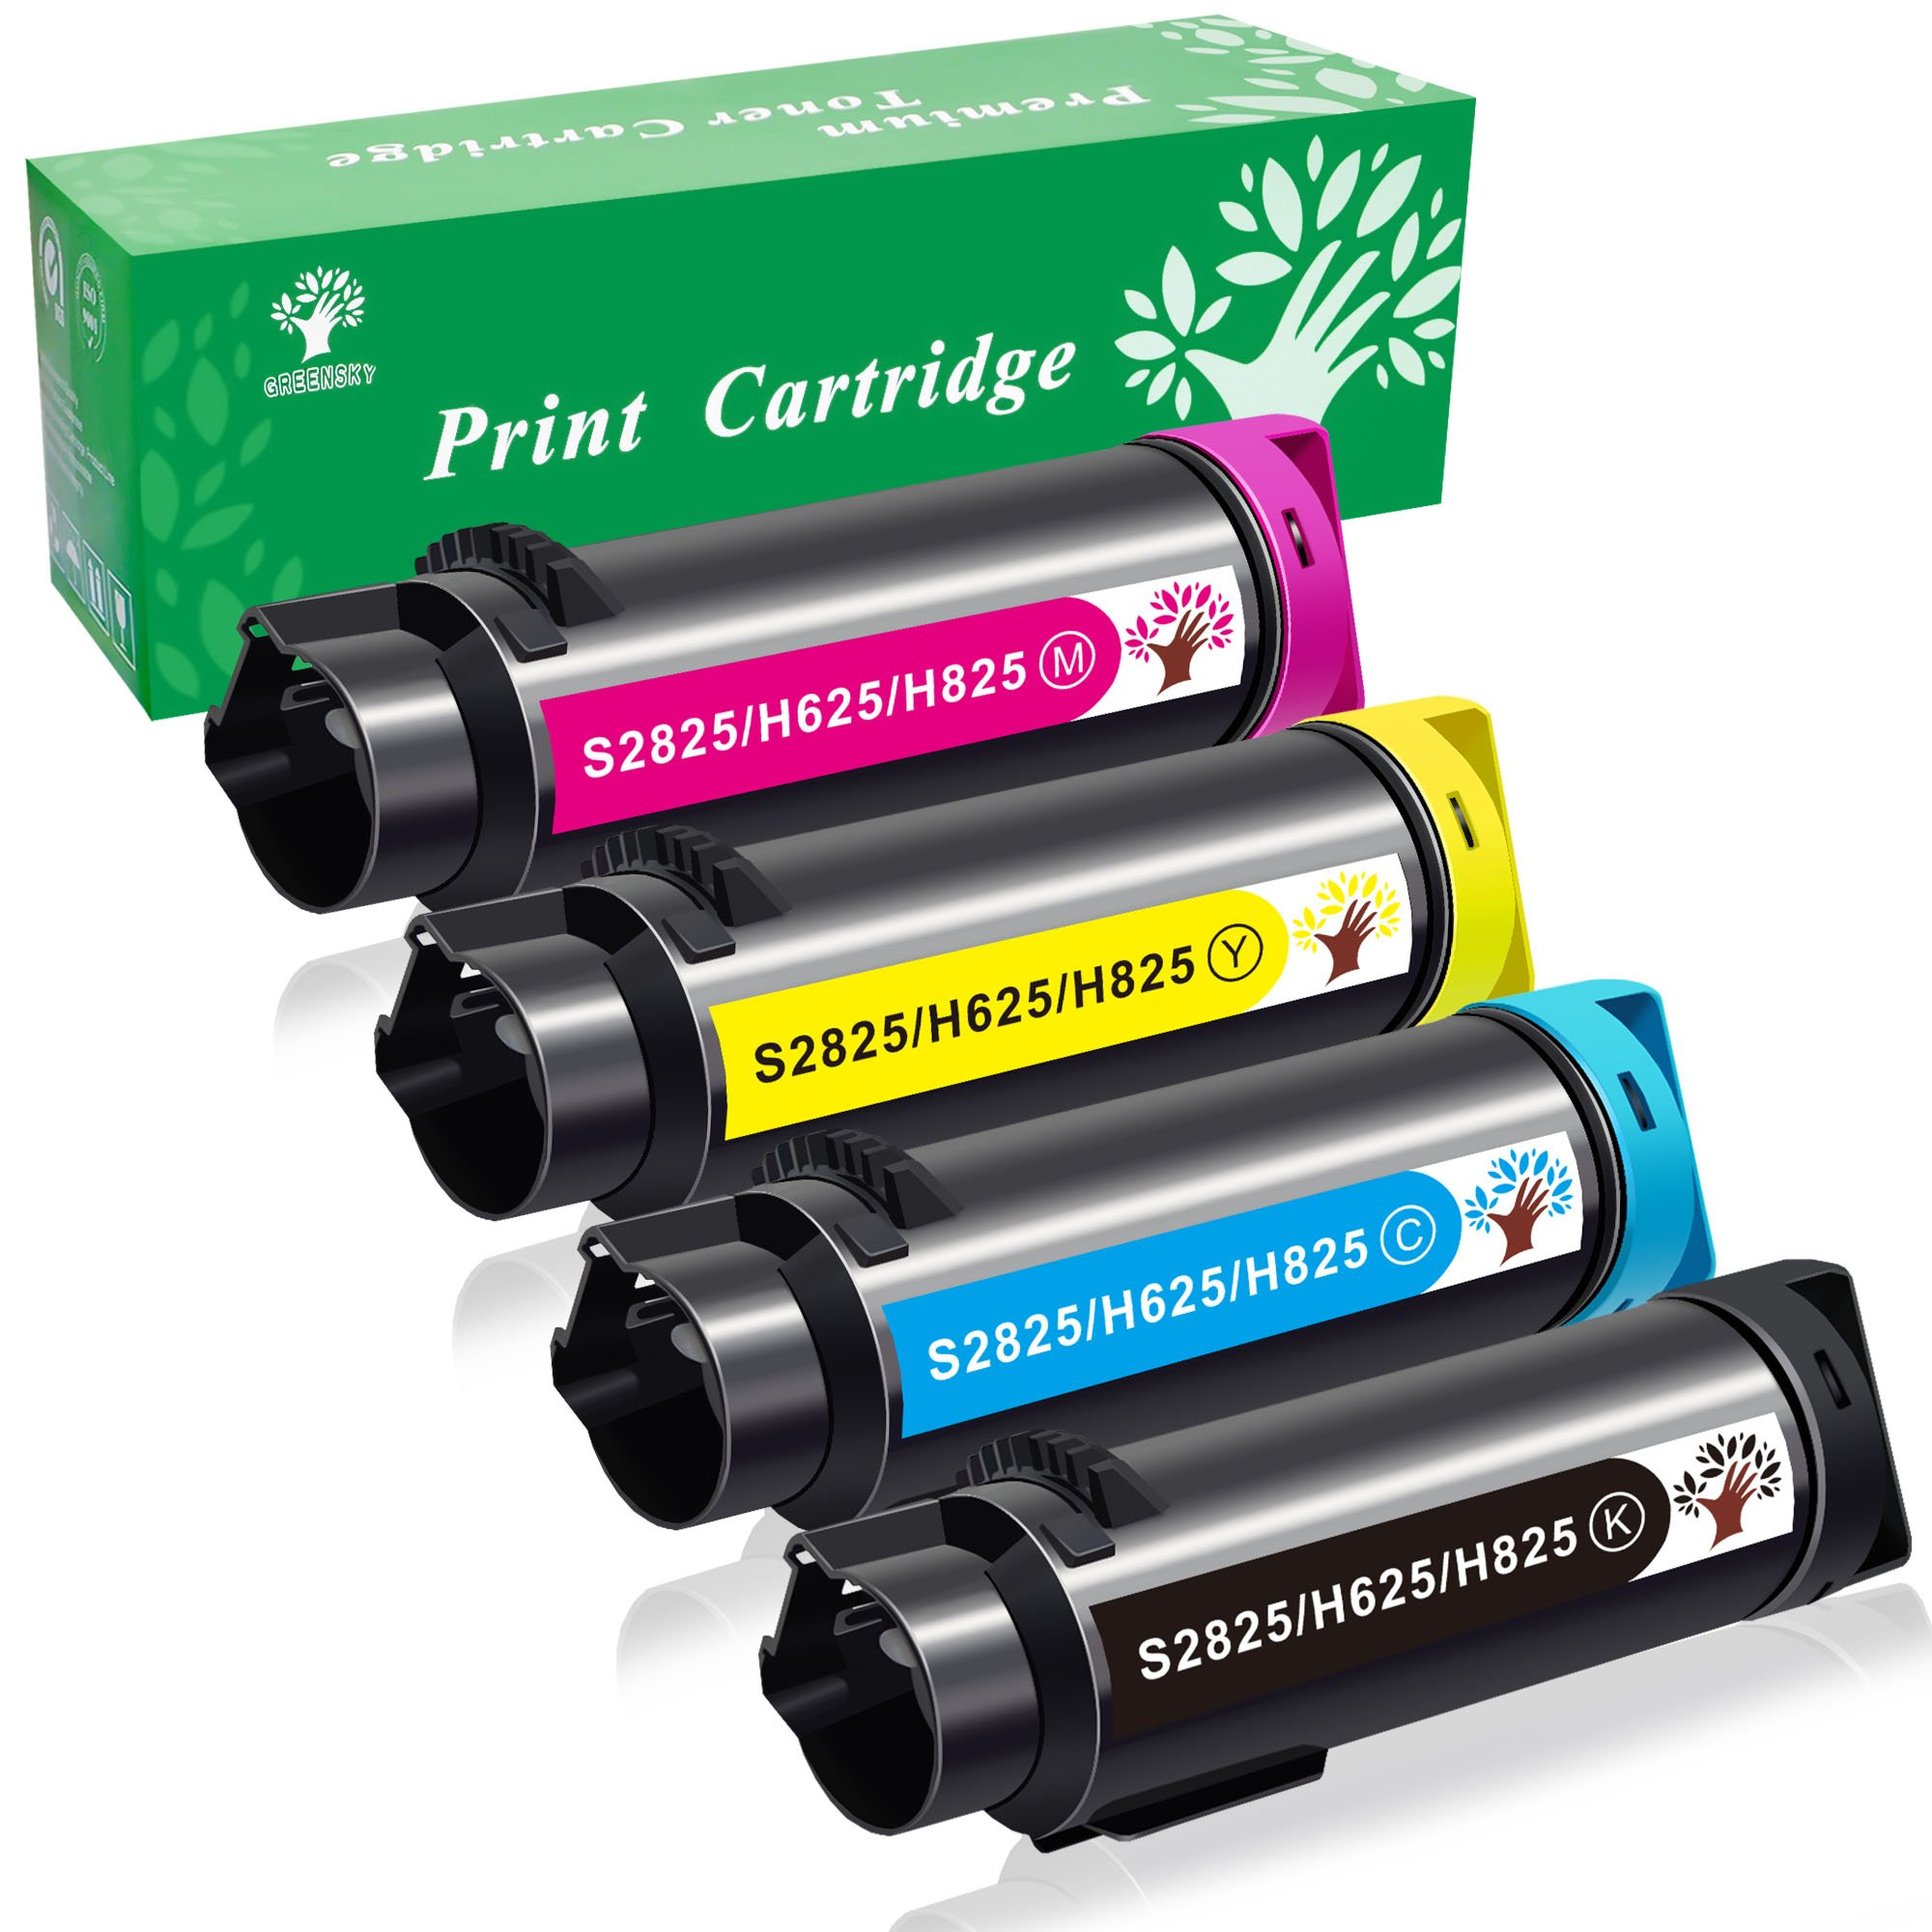 GREENSKY 4 Pack Compatible Toner Cartridge(593-BBOW-593-BBOX-593-BBOY-593-BBOZ) for Dell LaserJet Printers H625 cdw H825cdw S2825cdn printer High Yield 3000 pages & 2500 pages